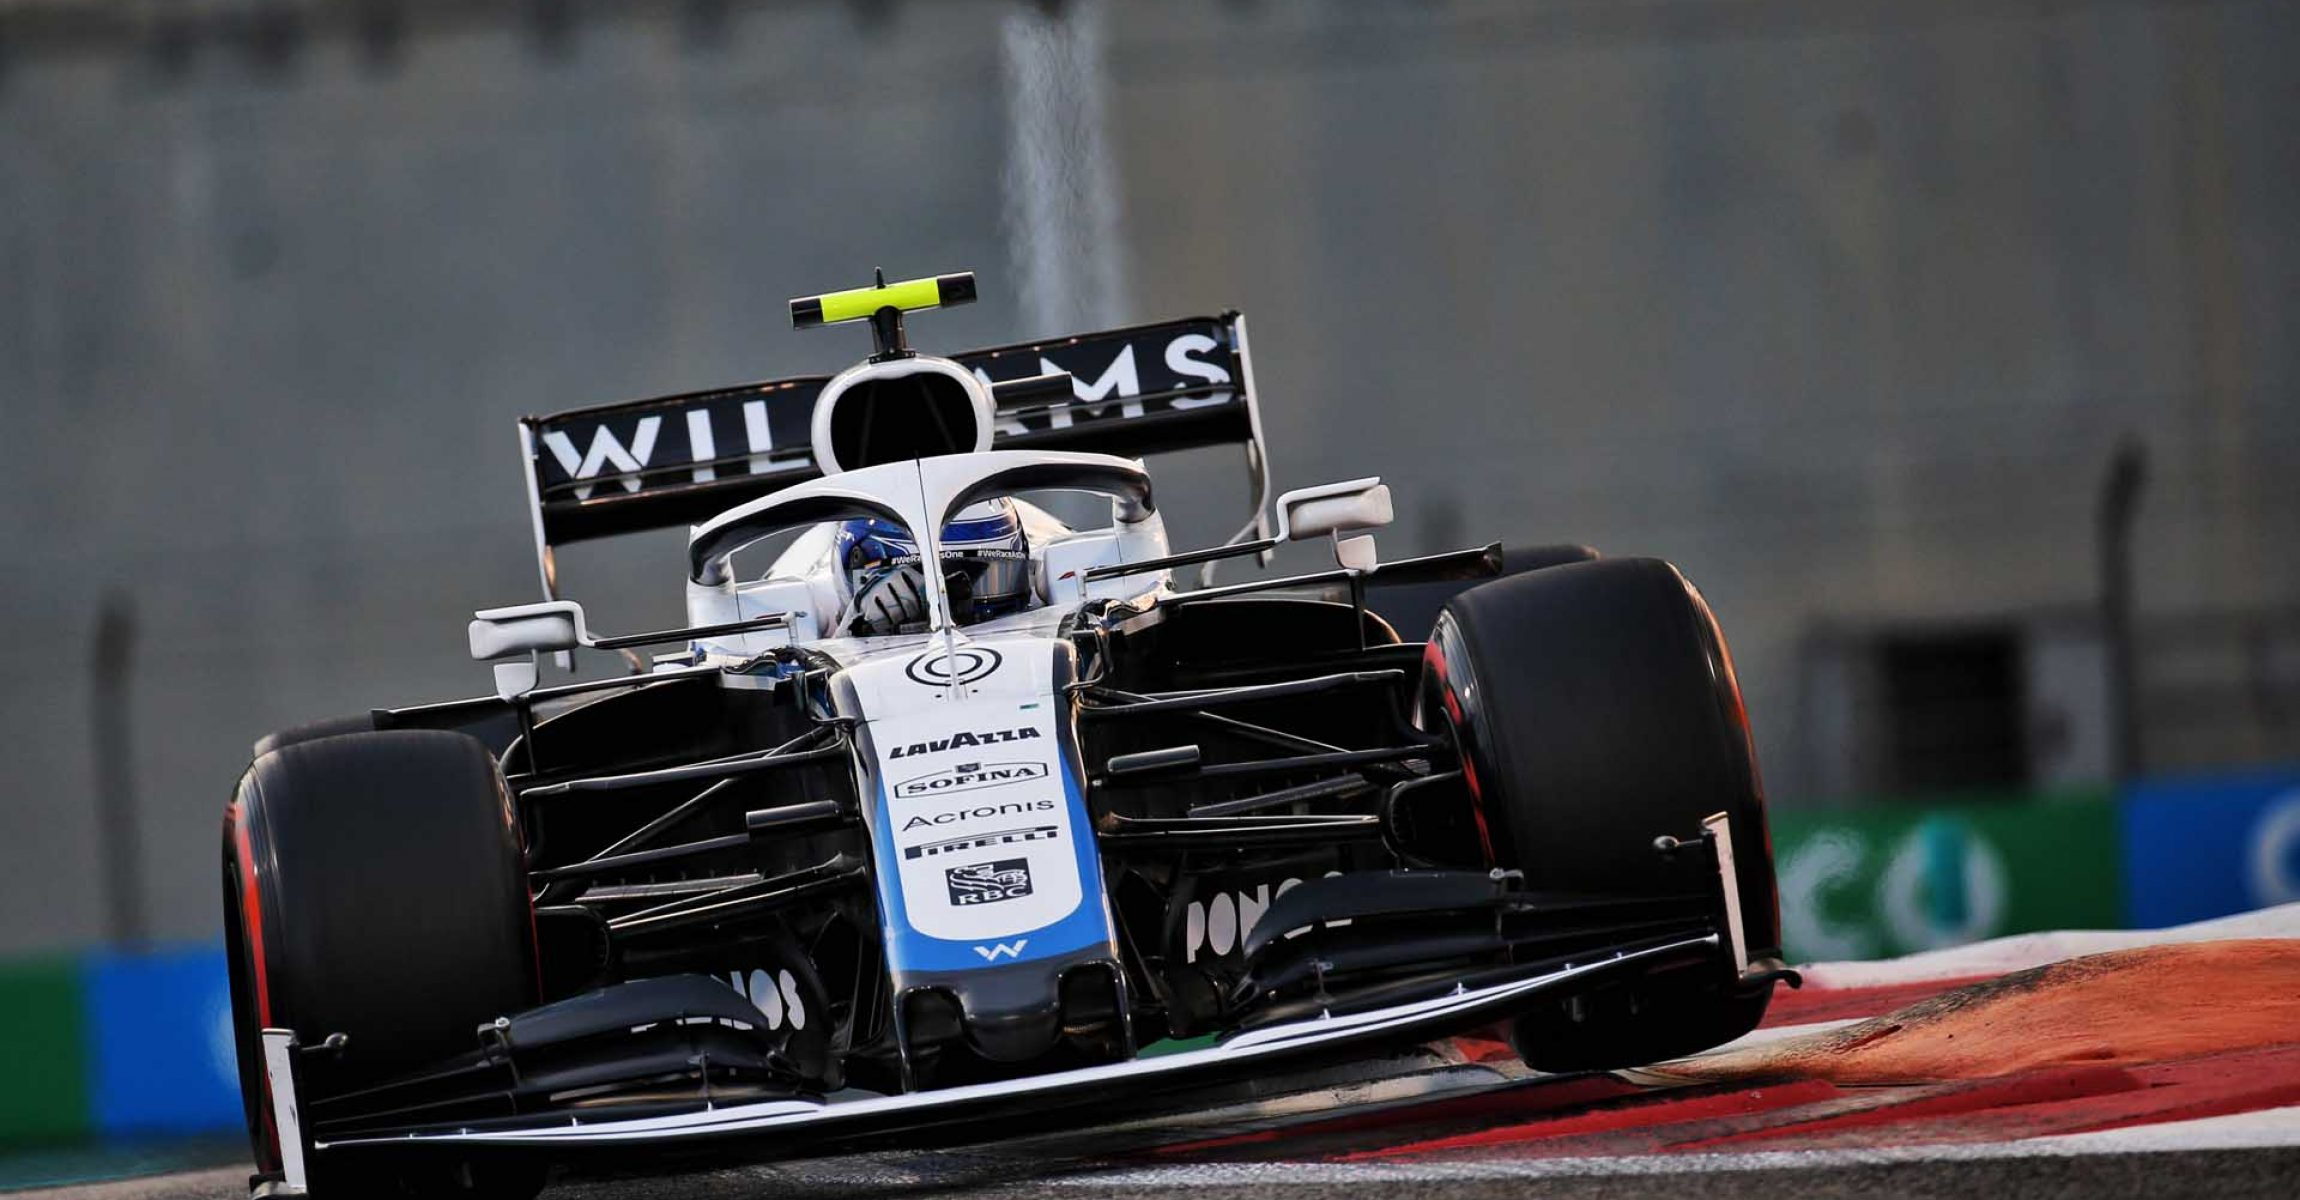 Nicholas Latifi (CDN) Williams Racing FW43. Abu Dhabi Grand Prix, Saturday 12th December 2020. Yas Marina Circuit, Abu Dhabi, UAE.